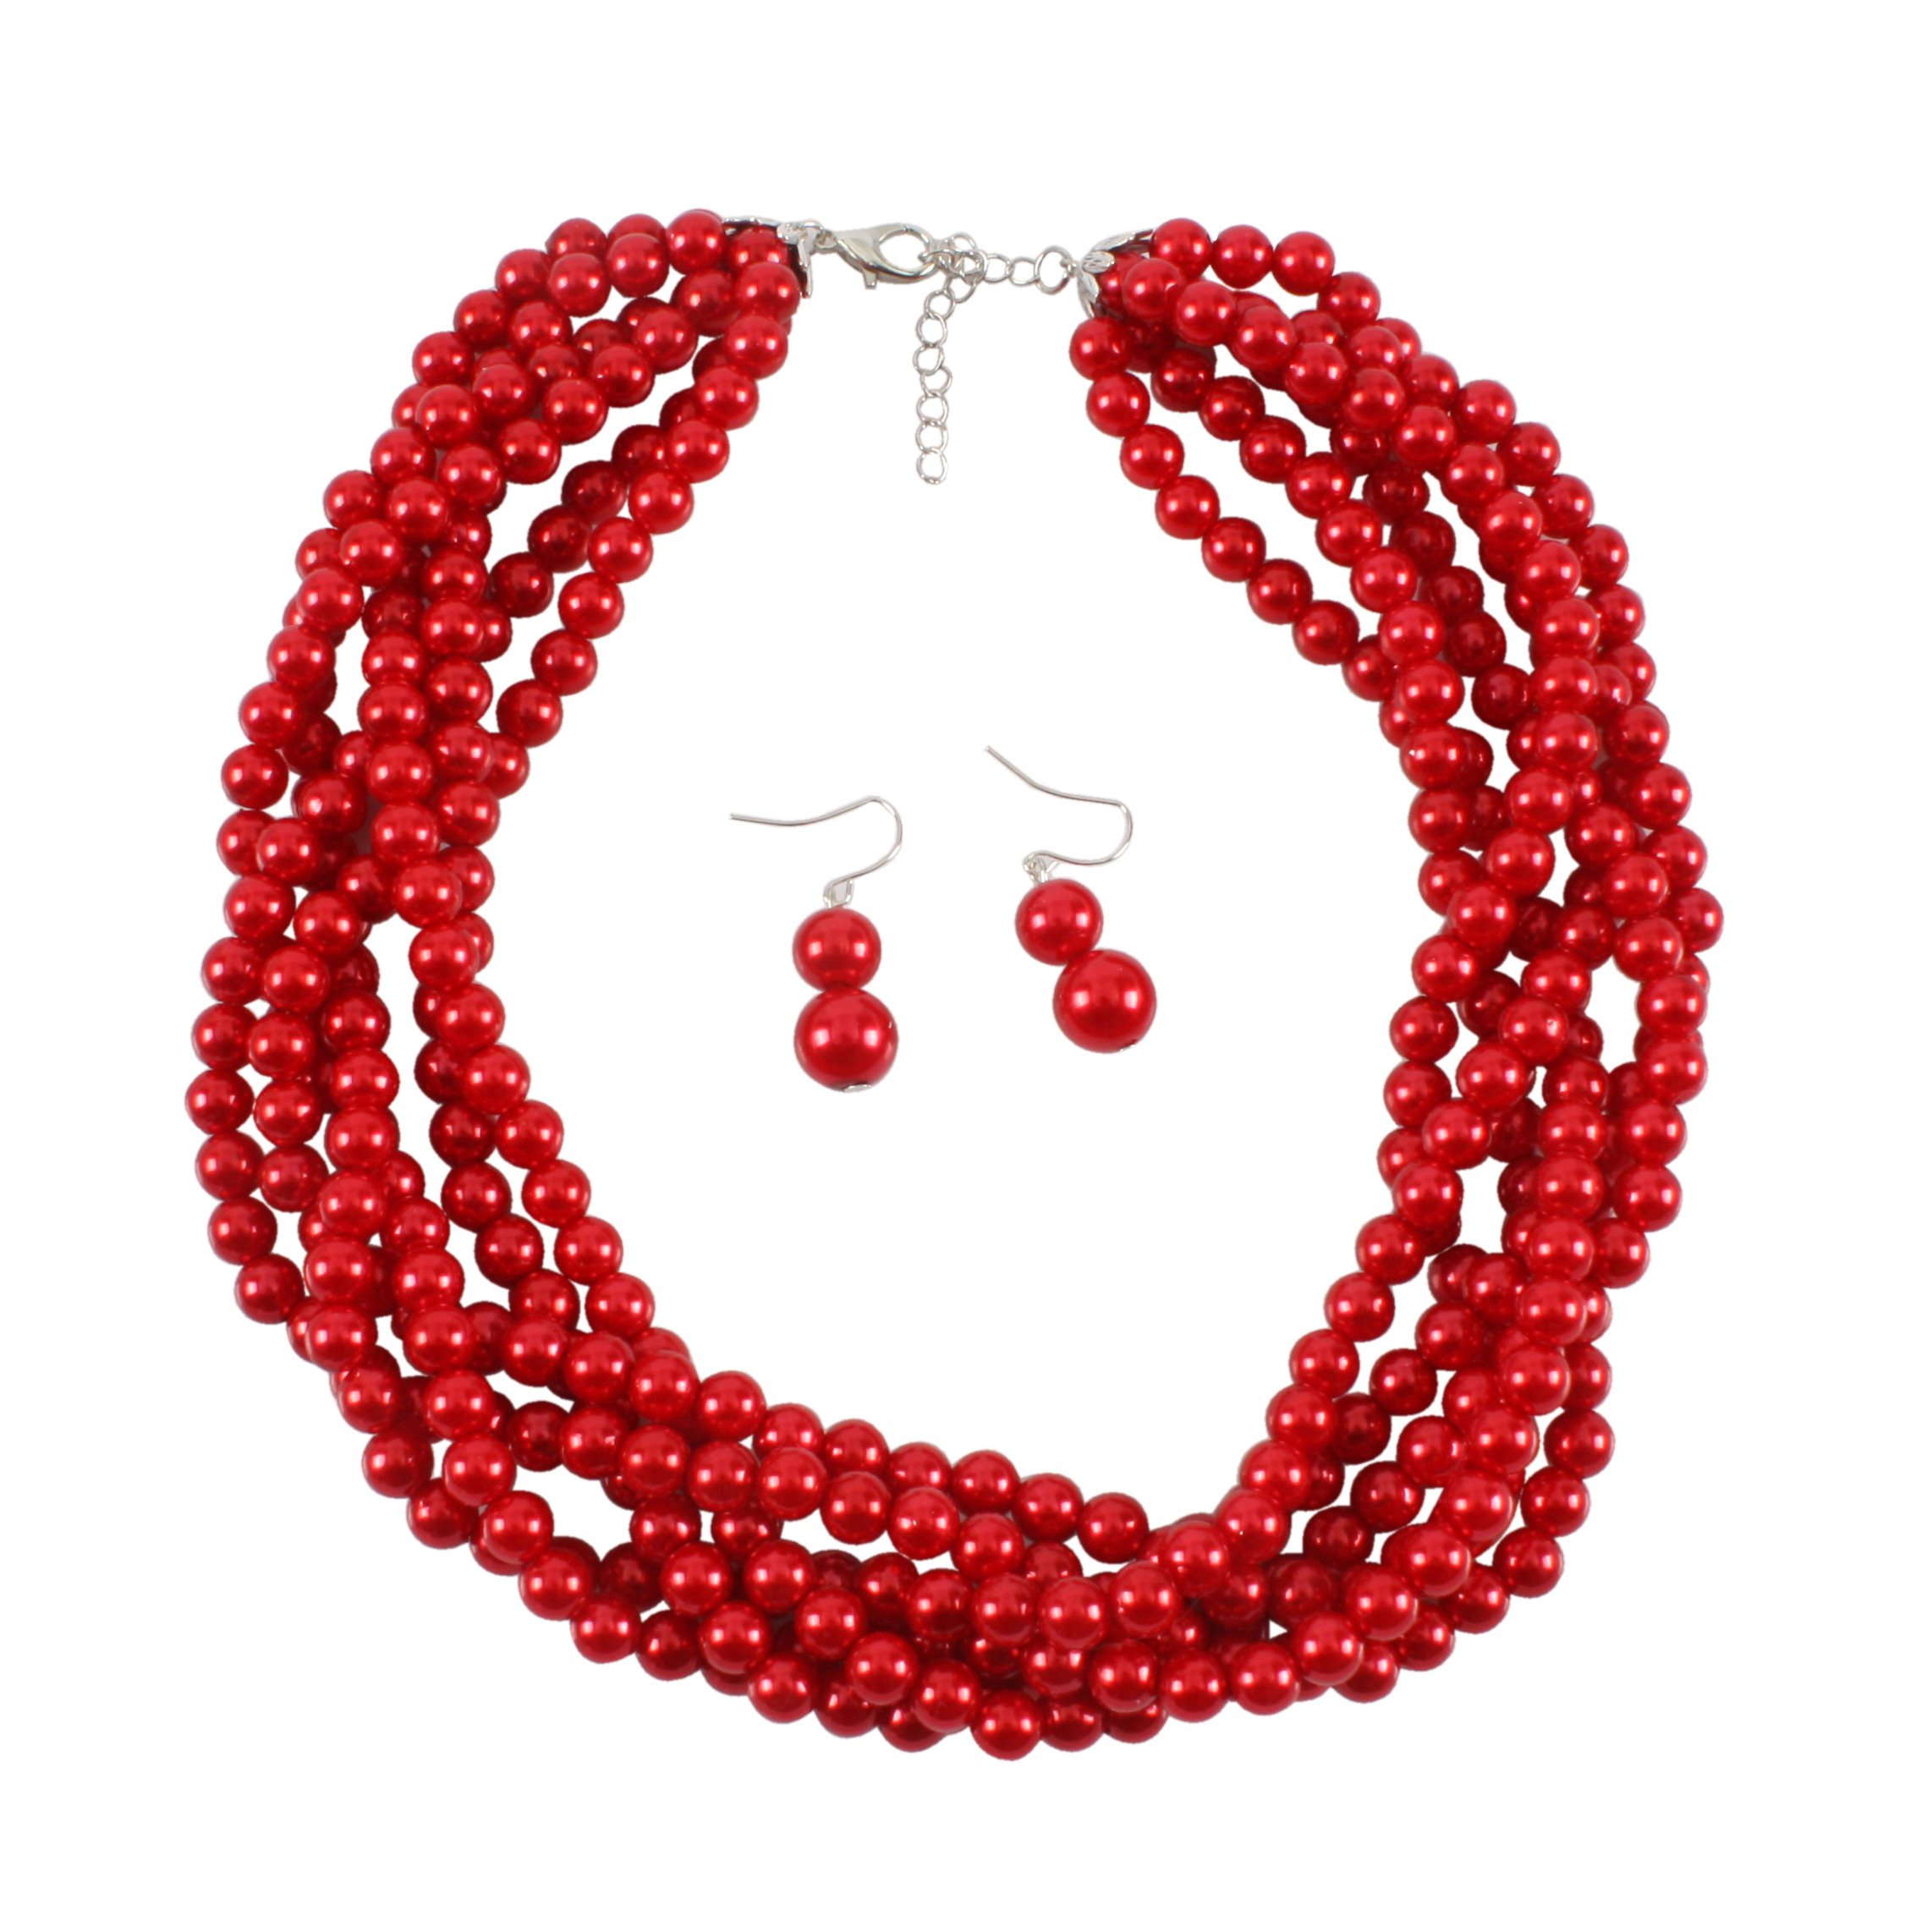 KOSMOS-LI Simulate Red Pearls Costume Jewelry Statement Earrings and Necklace Set …